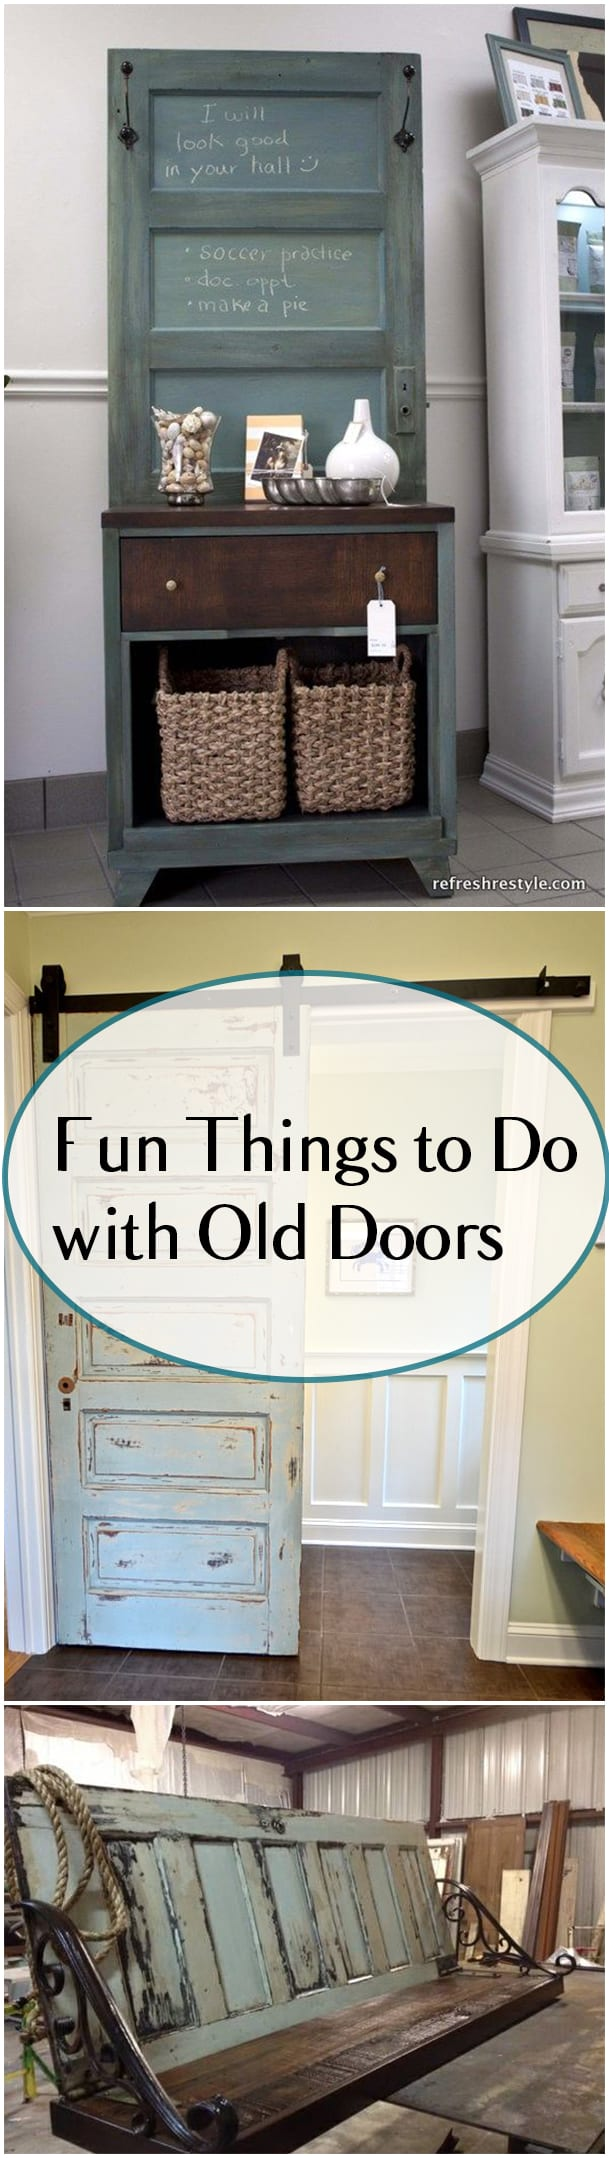 fun things to do with old doors how to build it